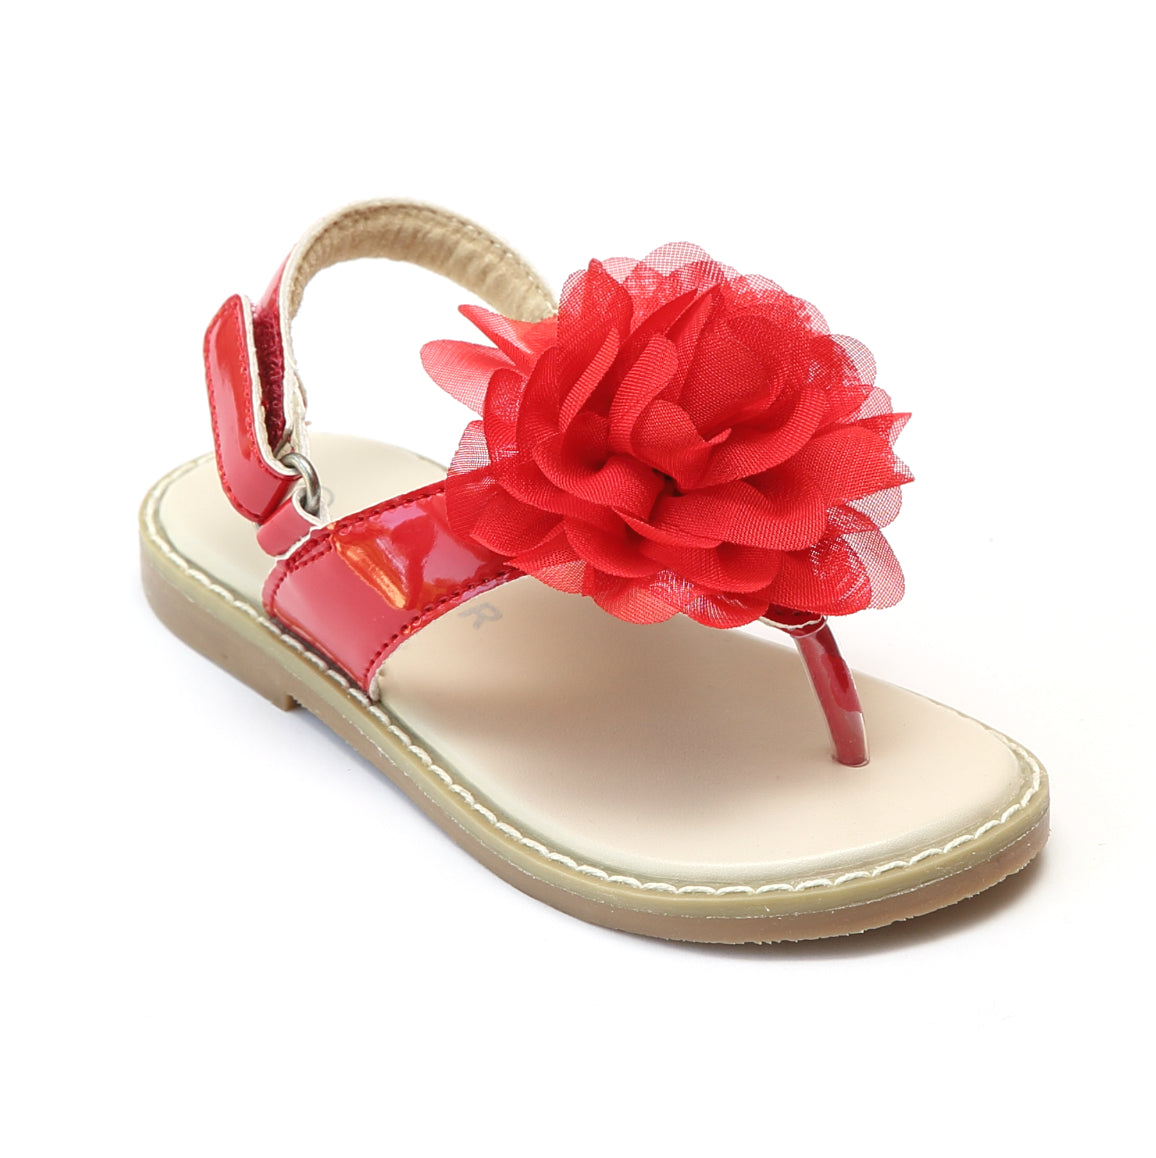 adf521a33f120 L Amour Girls Organza Flower Thong Sandals – Babychelle